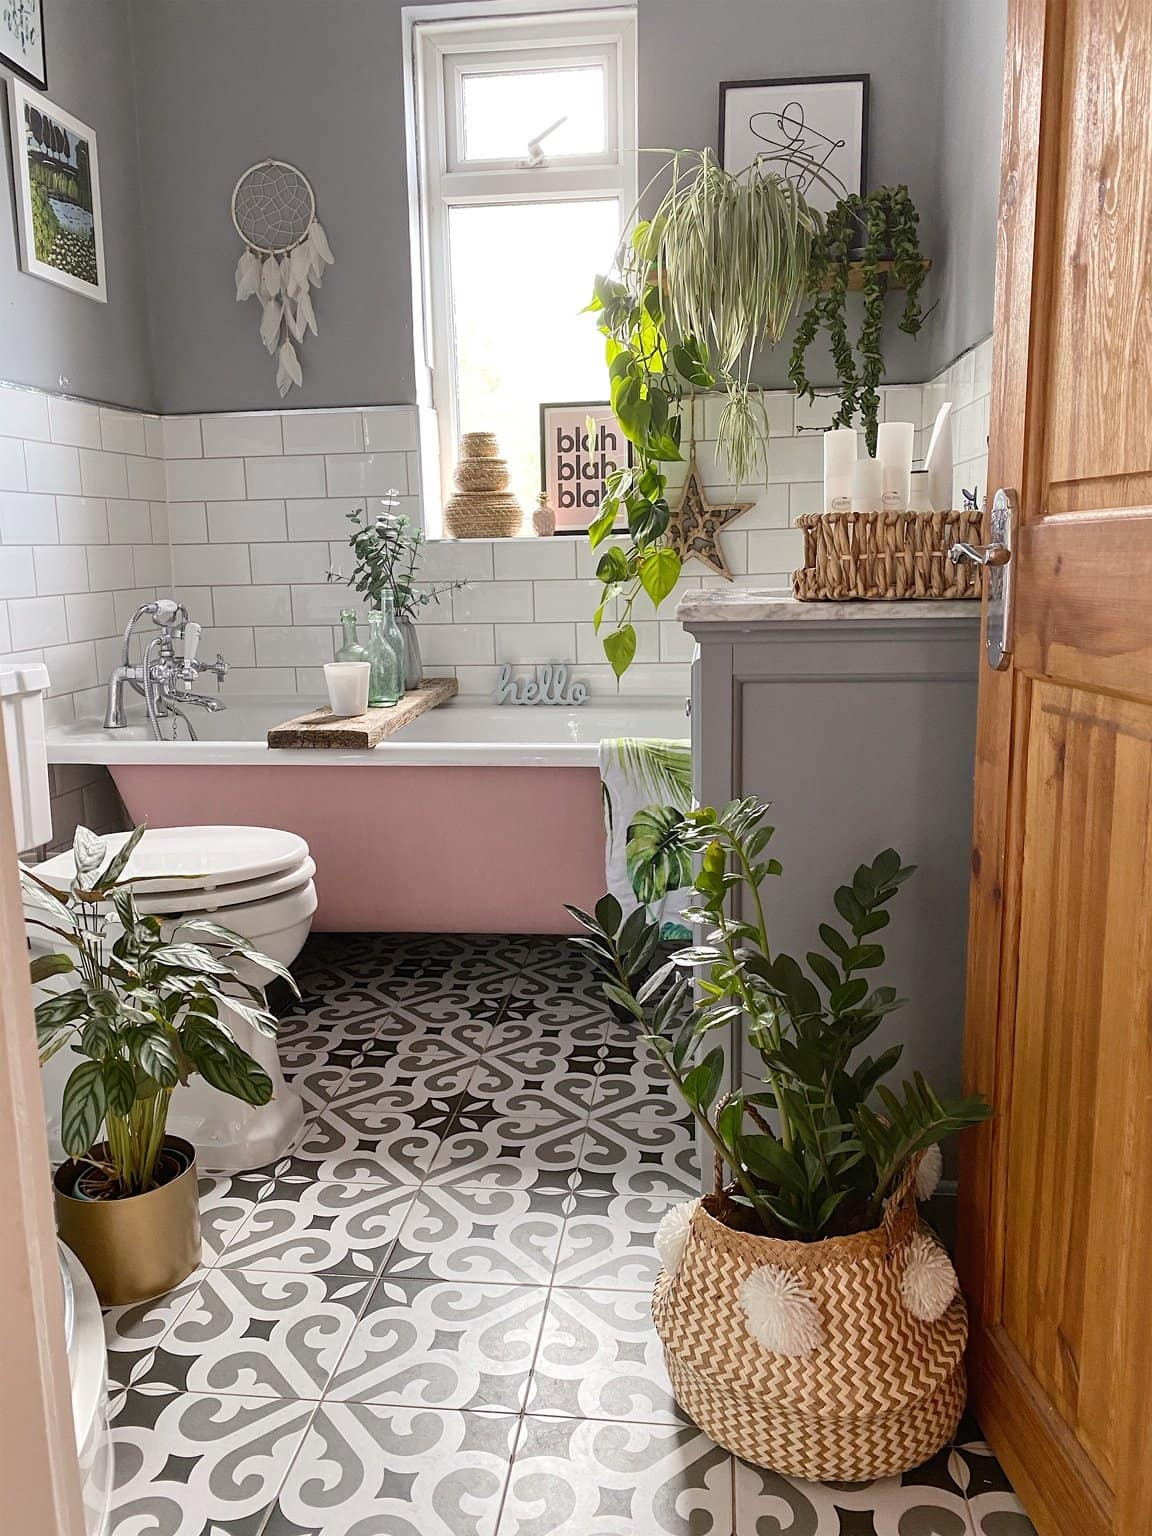 plants, bathroom, tiled floor, pink bath